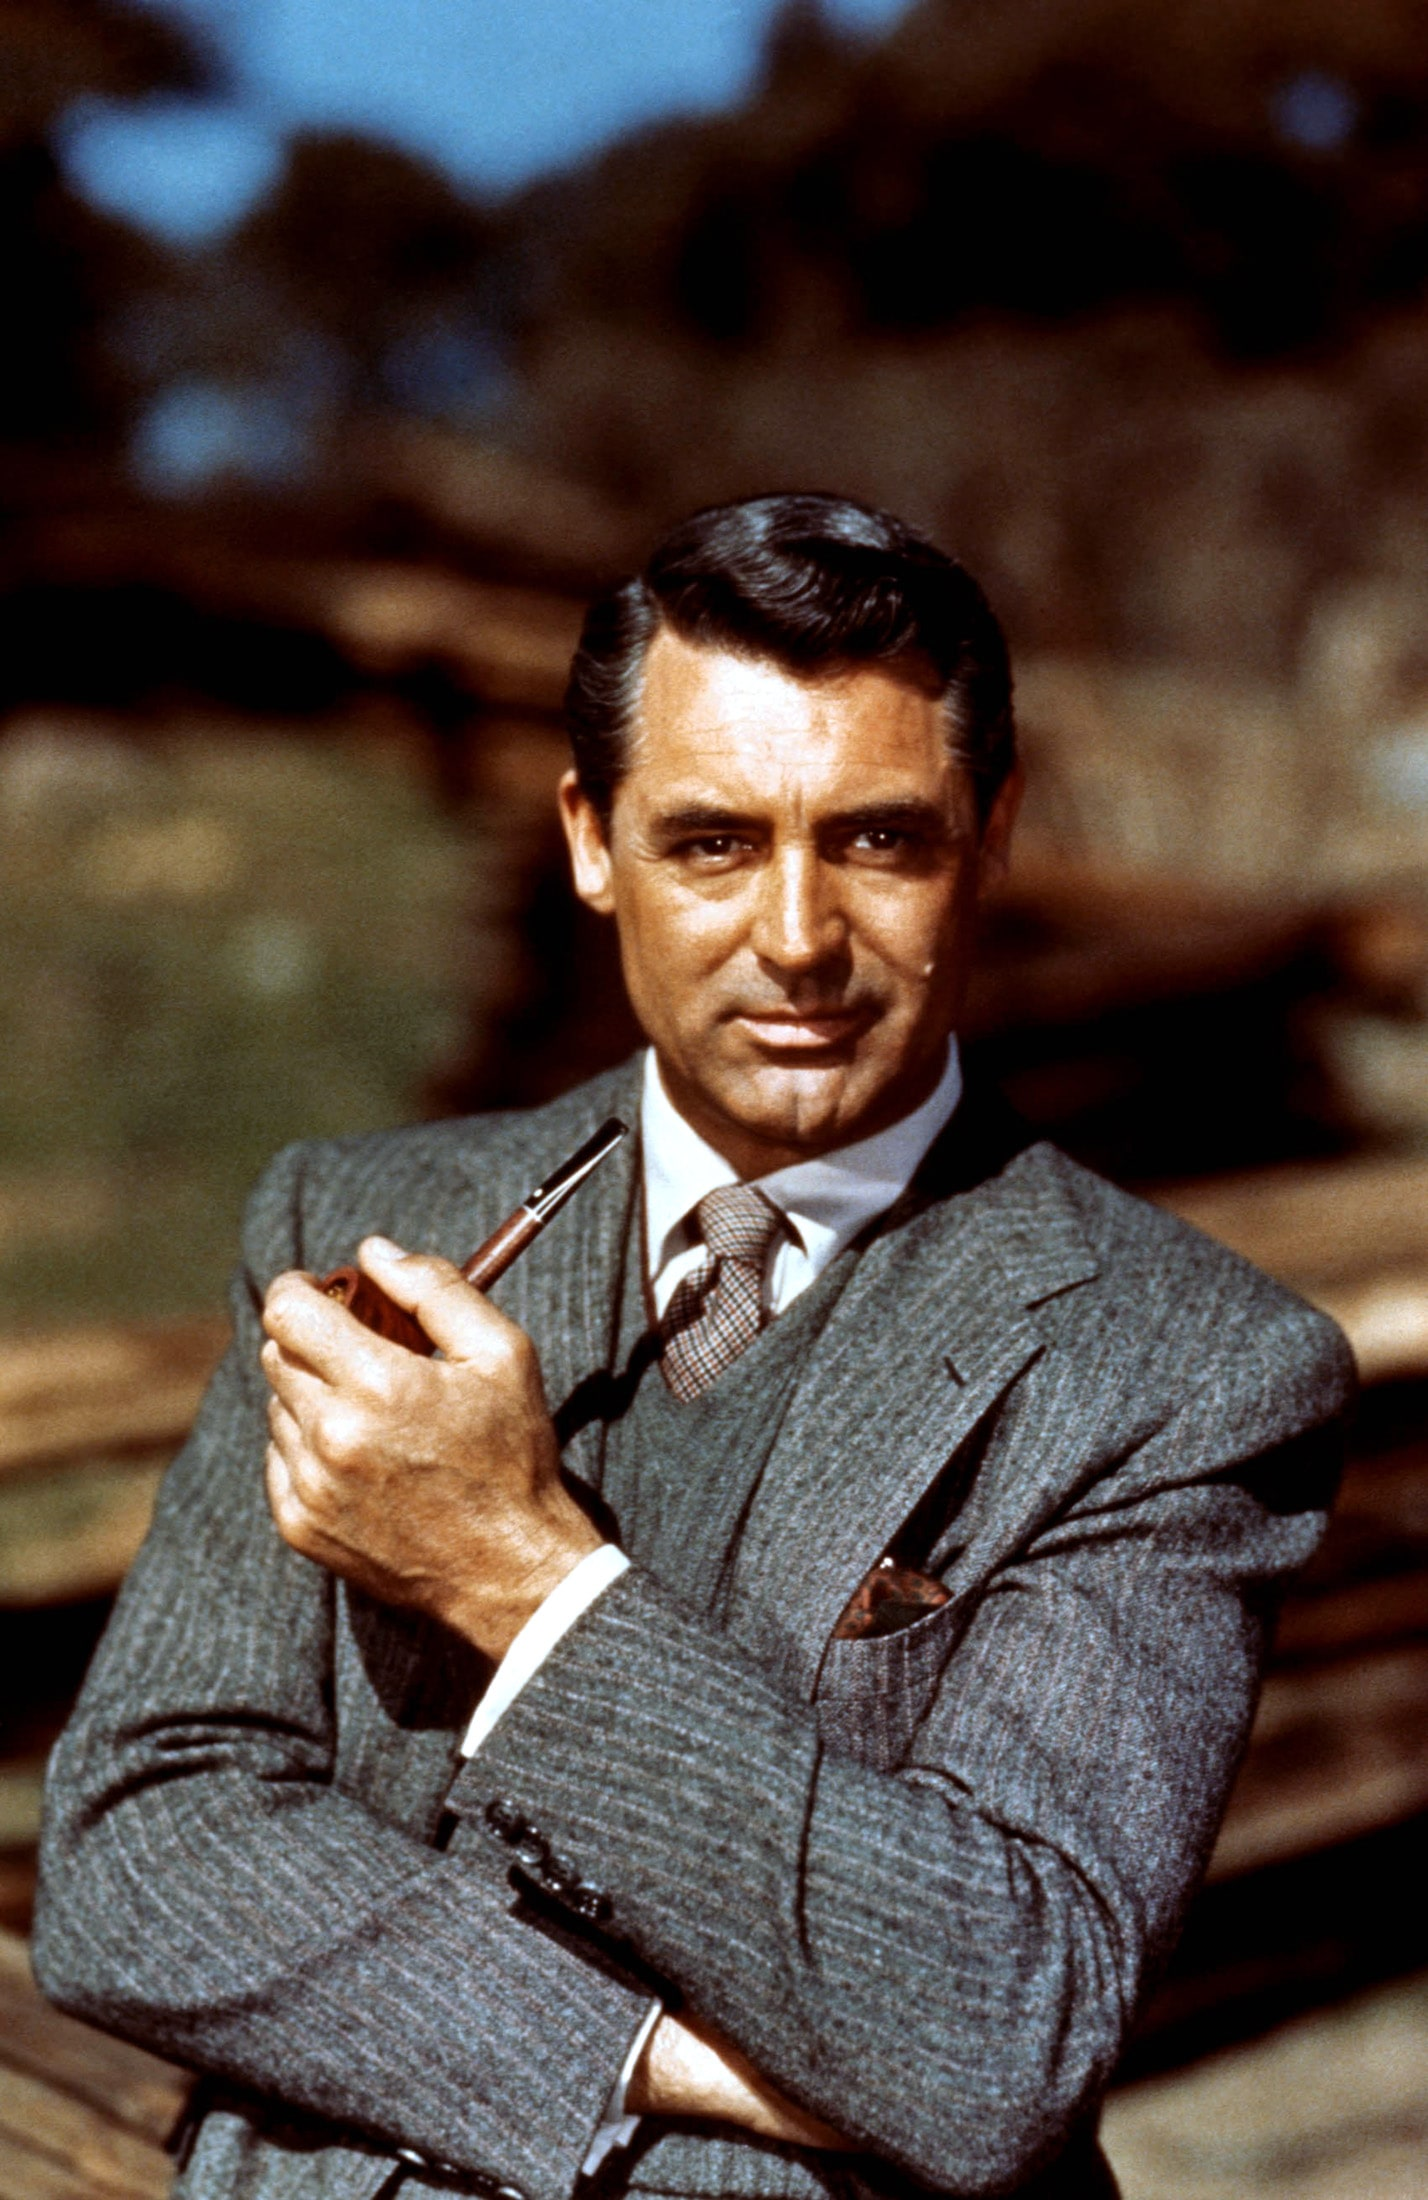 Cary Grant Desktop wallpapers